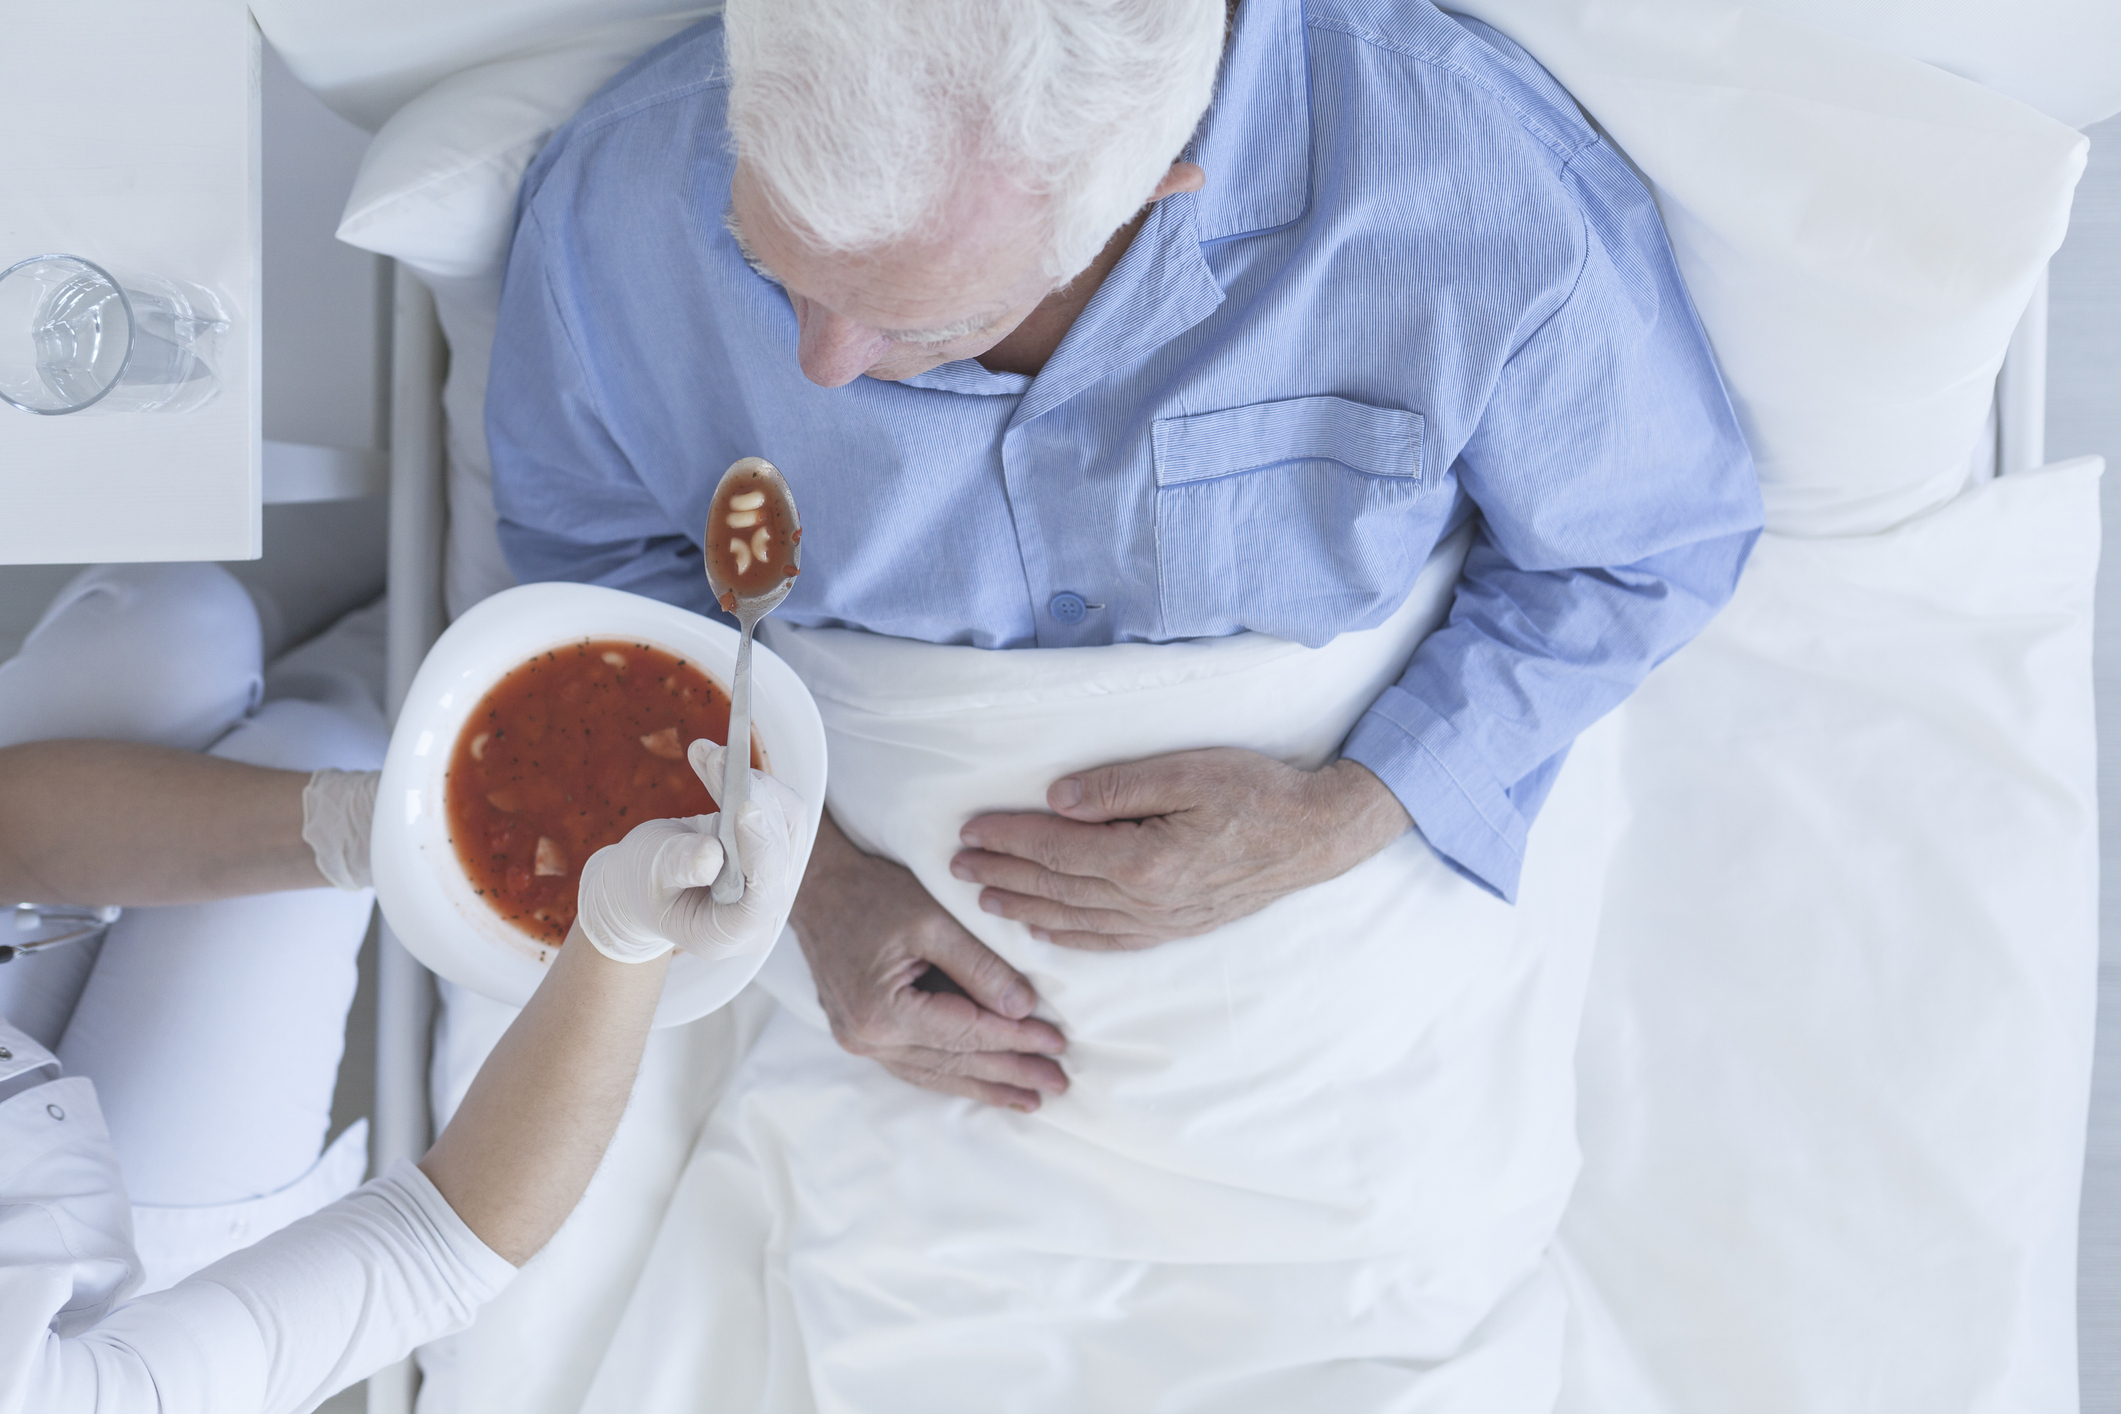 A nursing assistant feeds soup to an older man that is in bed